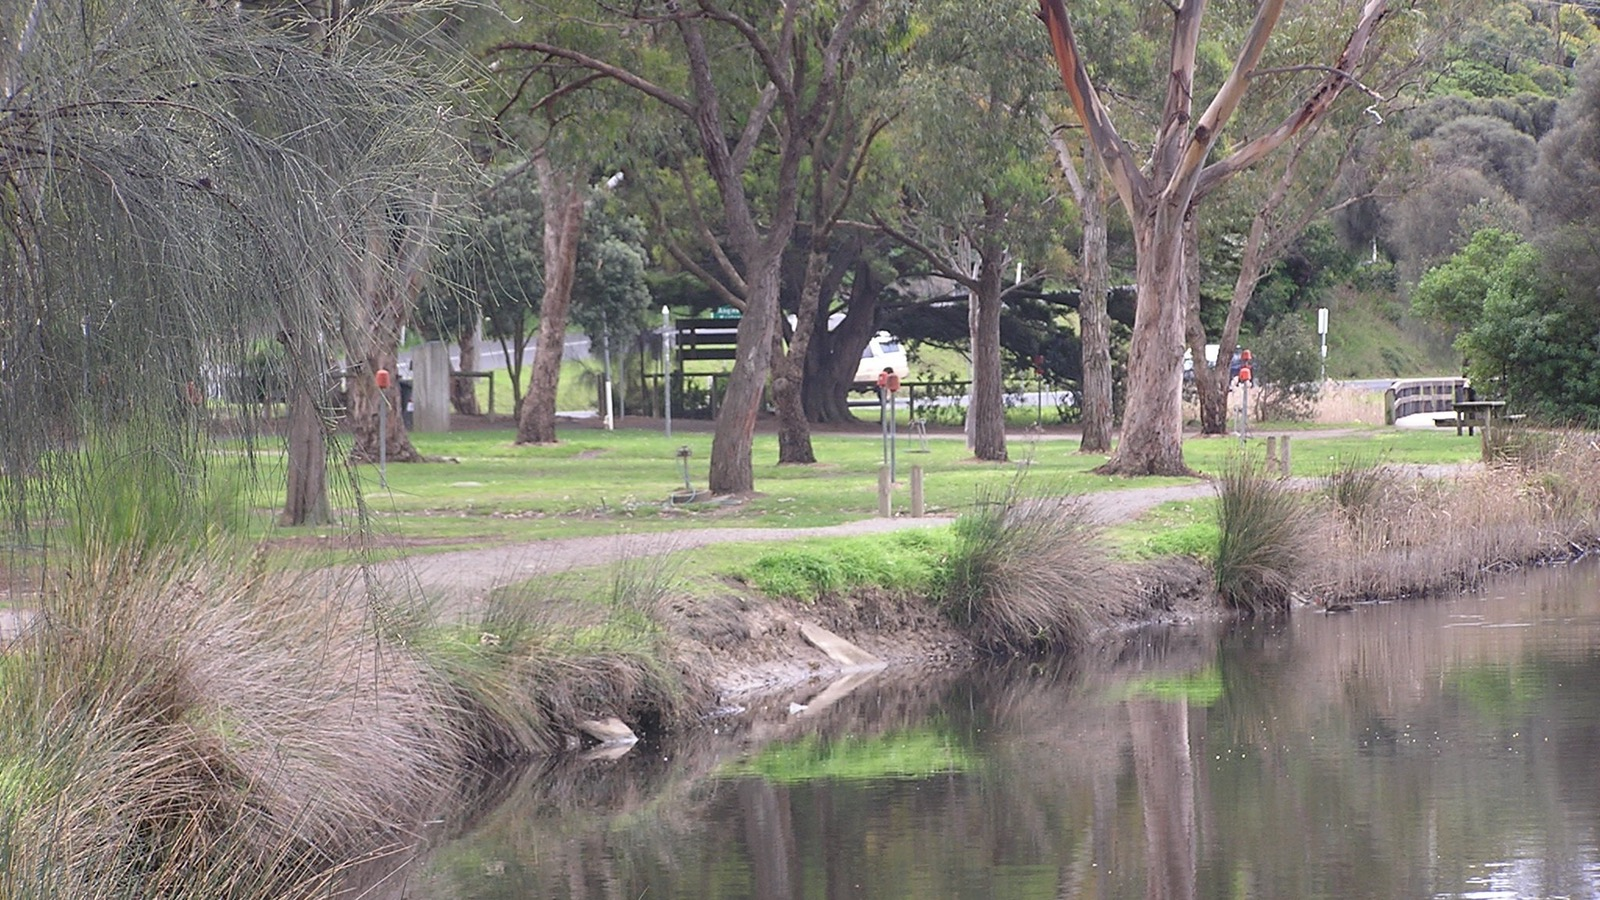 Camping by Erskine River